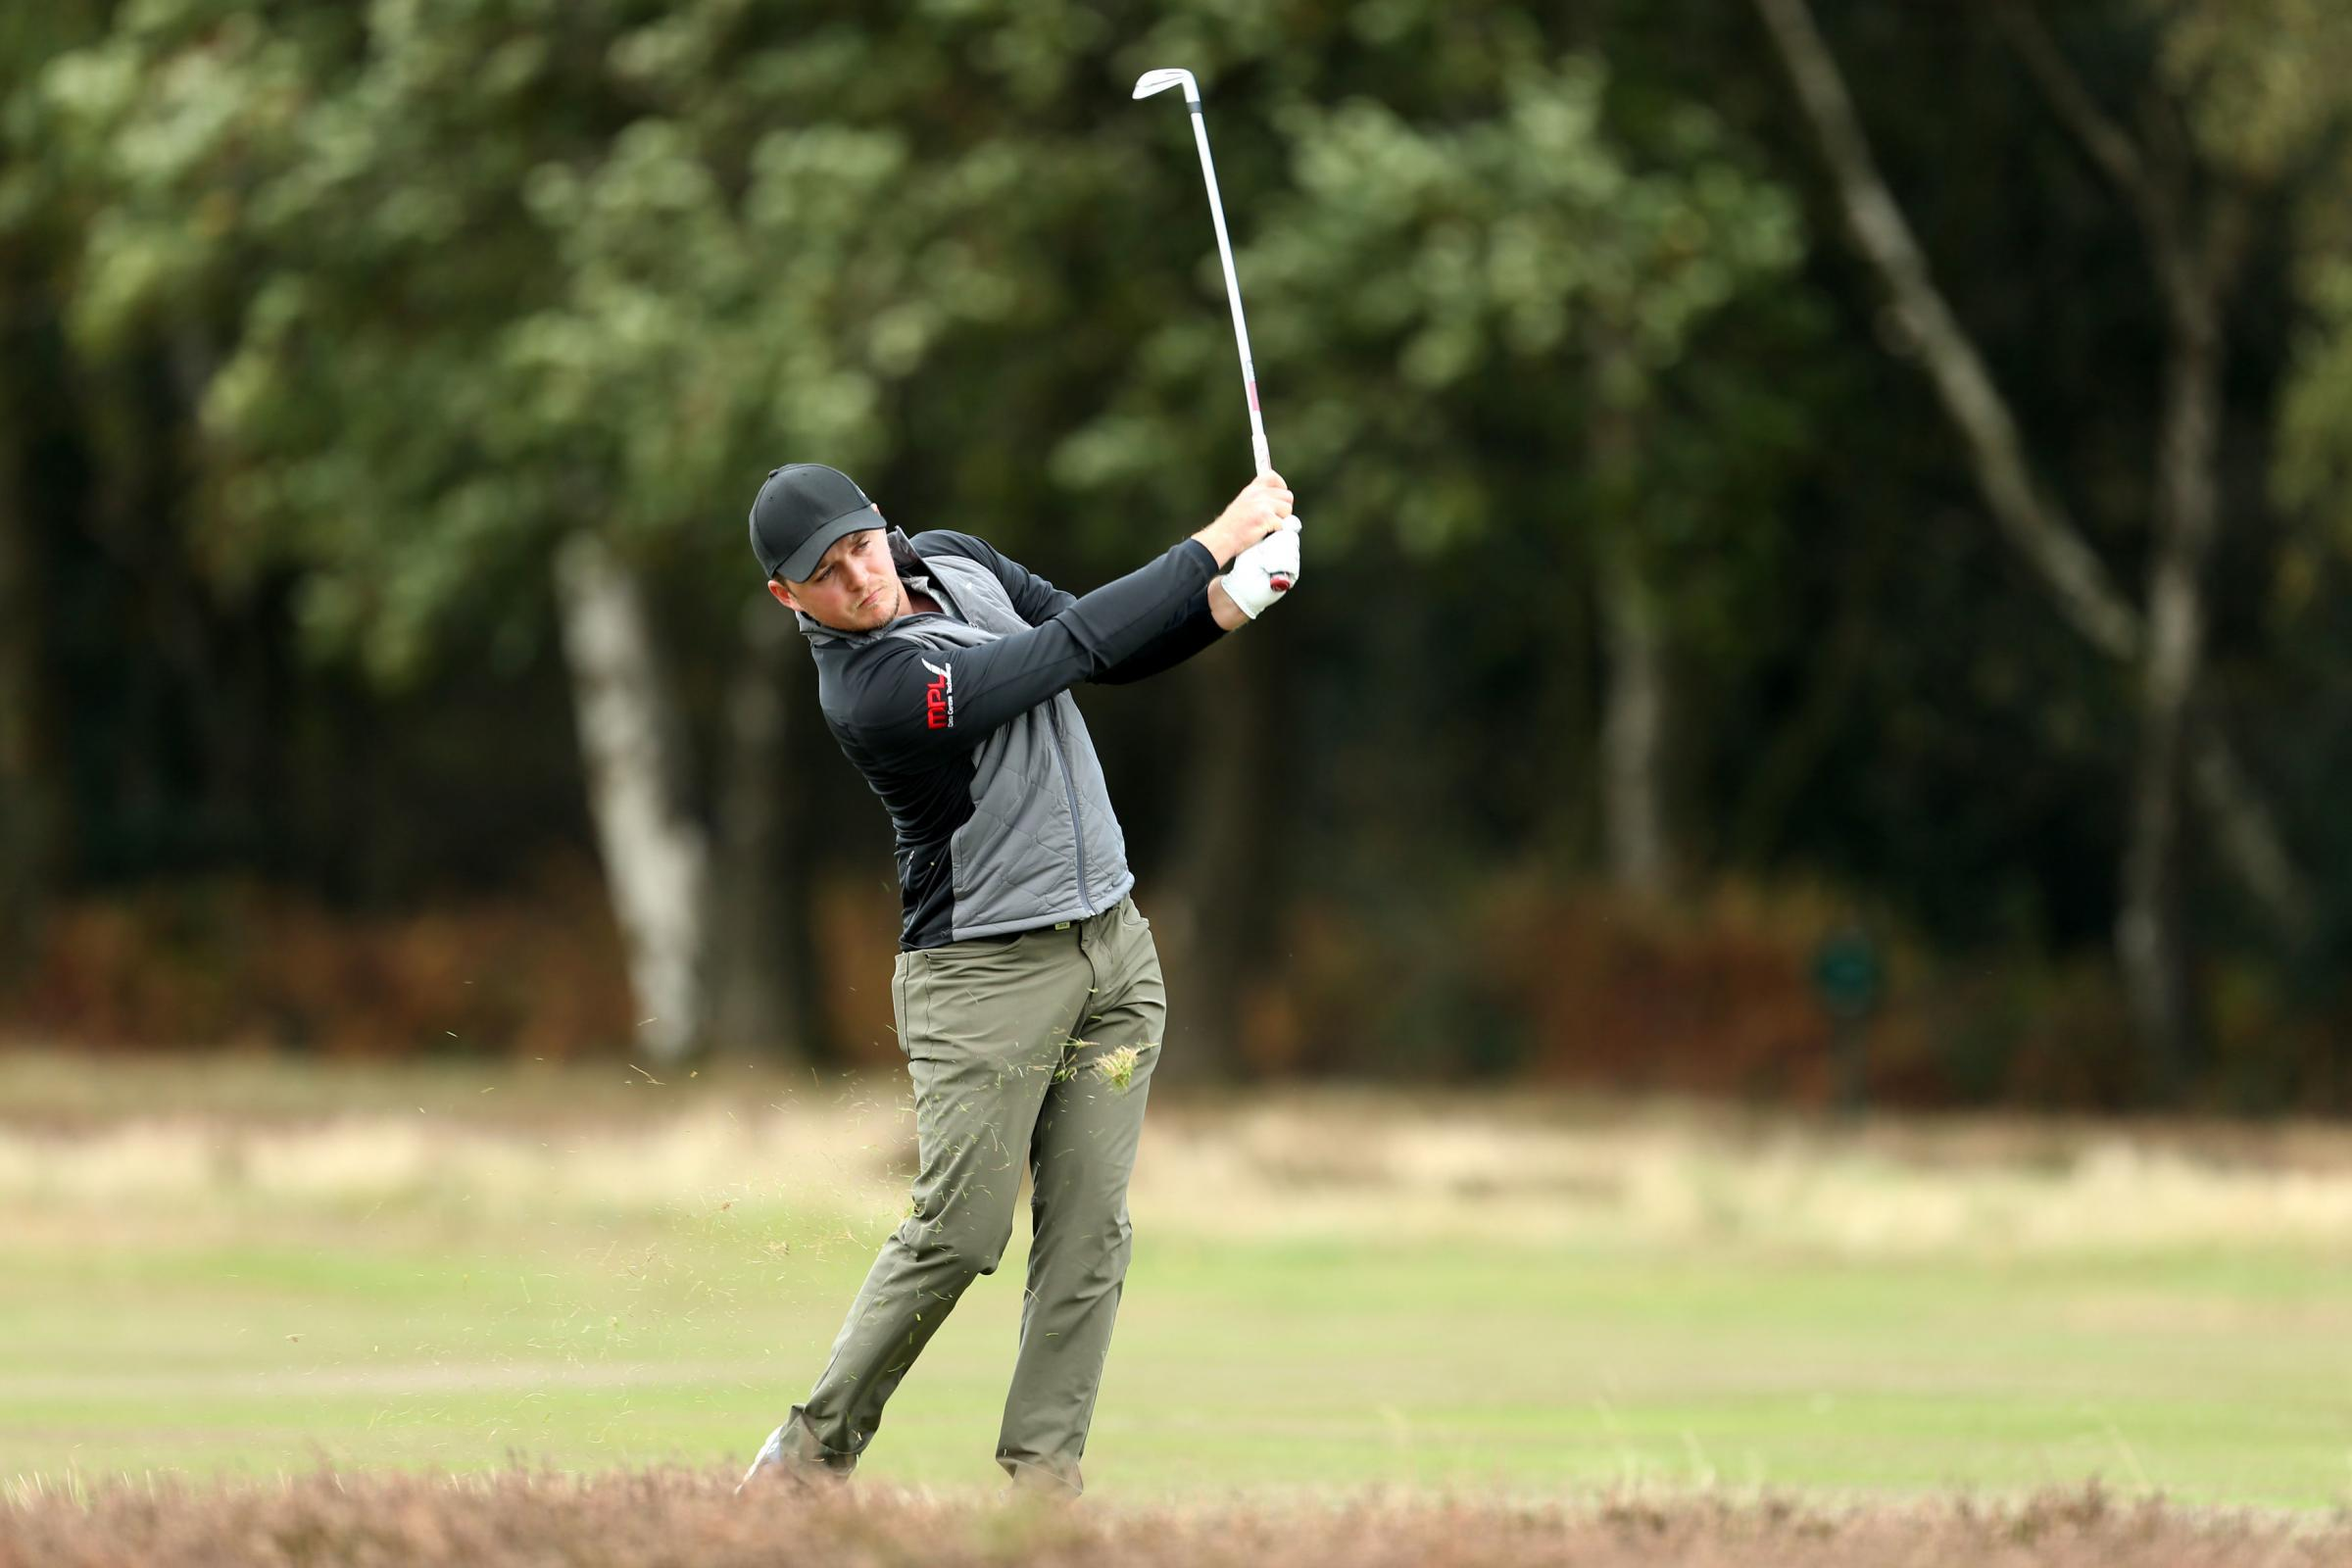 CLASS ACT: Eddie Pepperell on his way to victory in the British Masters, propelling the Oxfordshire ace to number 33 in the world  Picture: Steven Paston/PA Wire